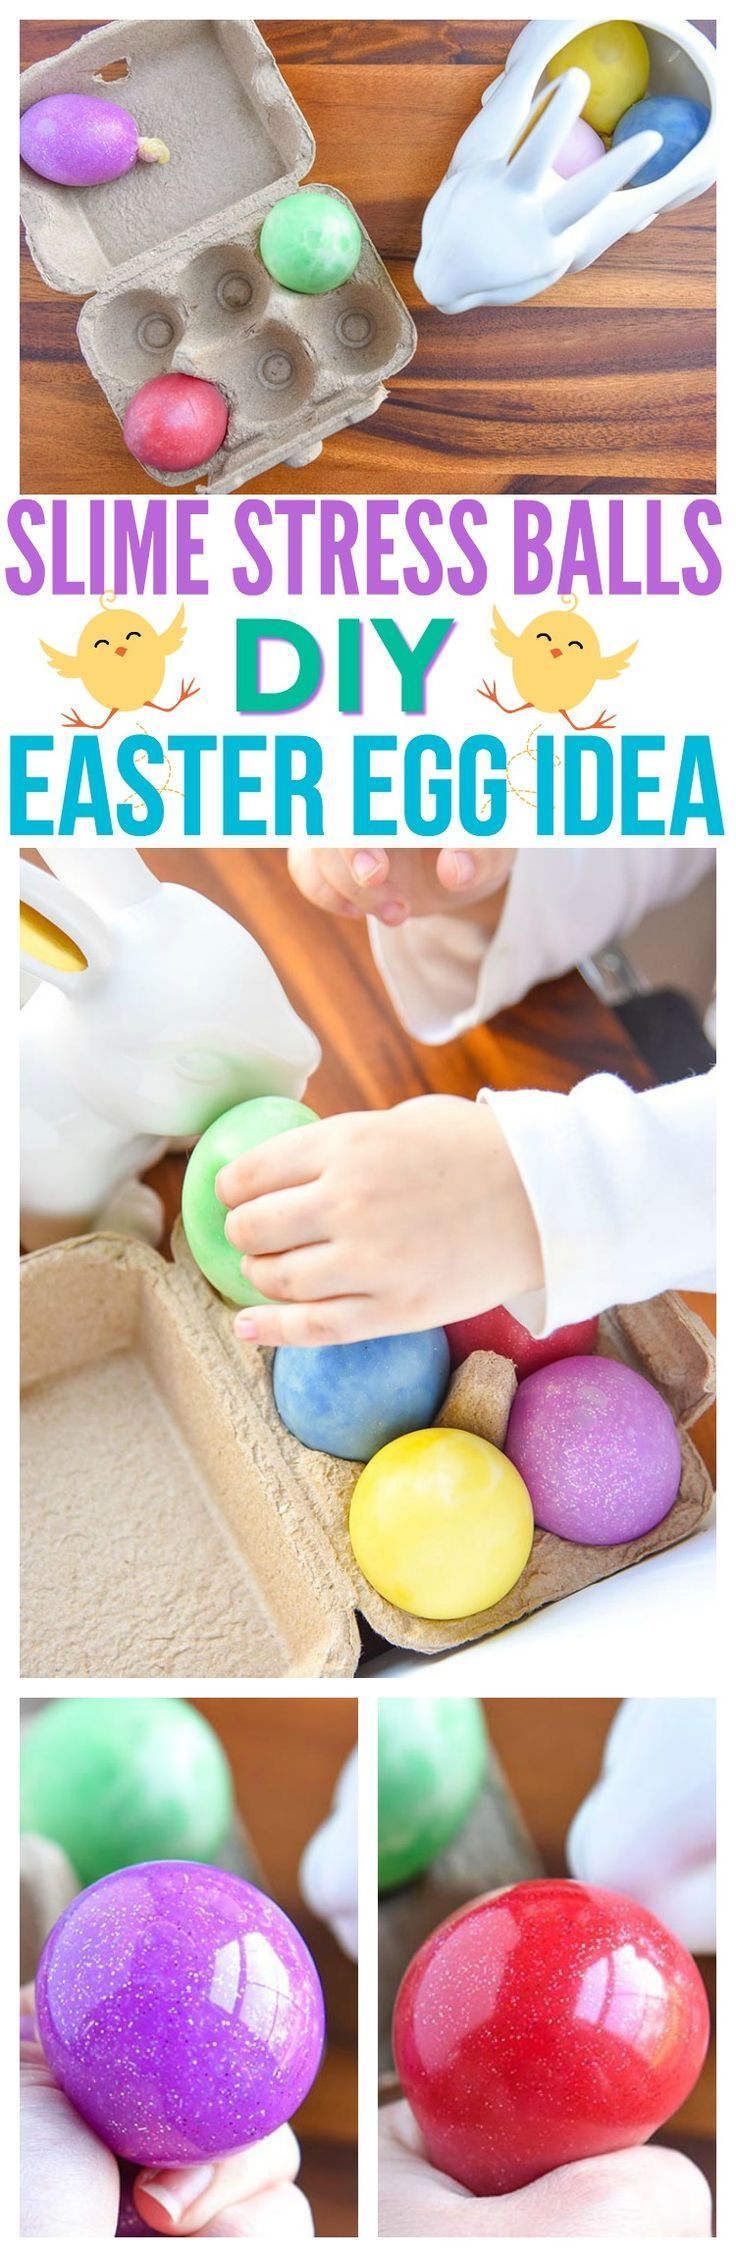 slime recipe without borax easy slime recipe for kids easter egg ideas easter crafts for toddlers easy diy slime recipe fun crafts for kids via @CourtneysSweets